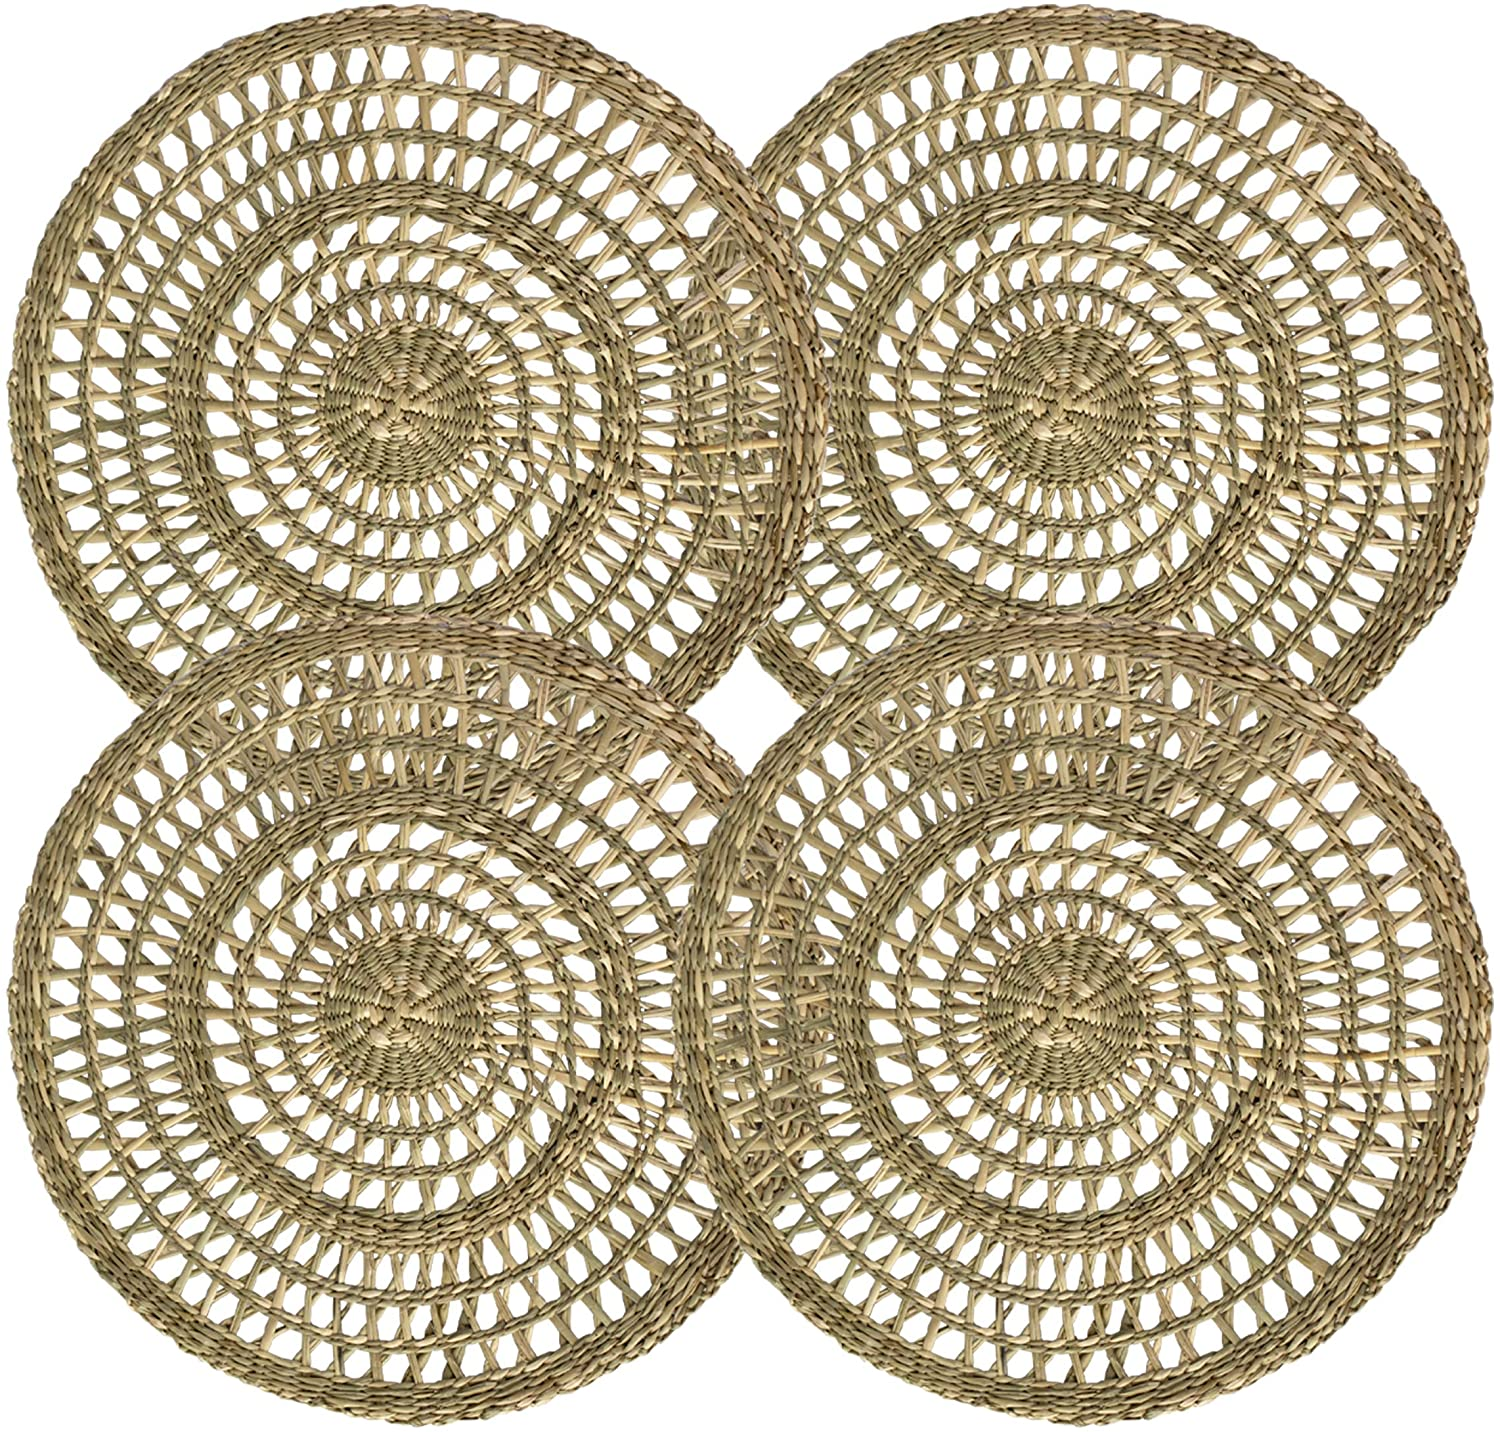 Set of 4 Pack Woven Placemats for Dining Table, Round Braided Place Mat Handmade Natural Seagrass Wicker Placemat Heat Resistant Hot Insulation Anti-Skidding Non-Slip (Natural)